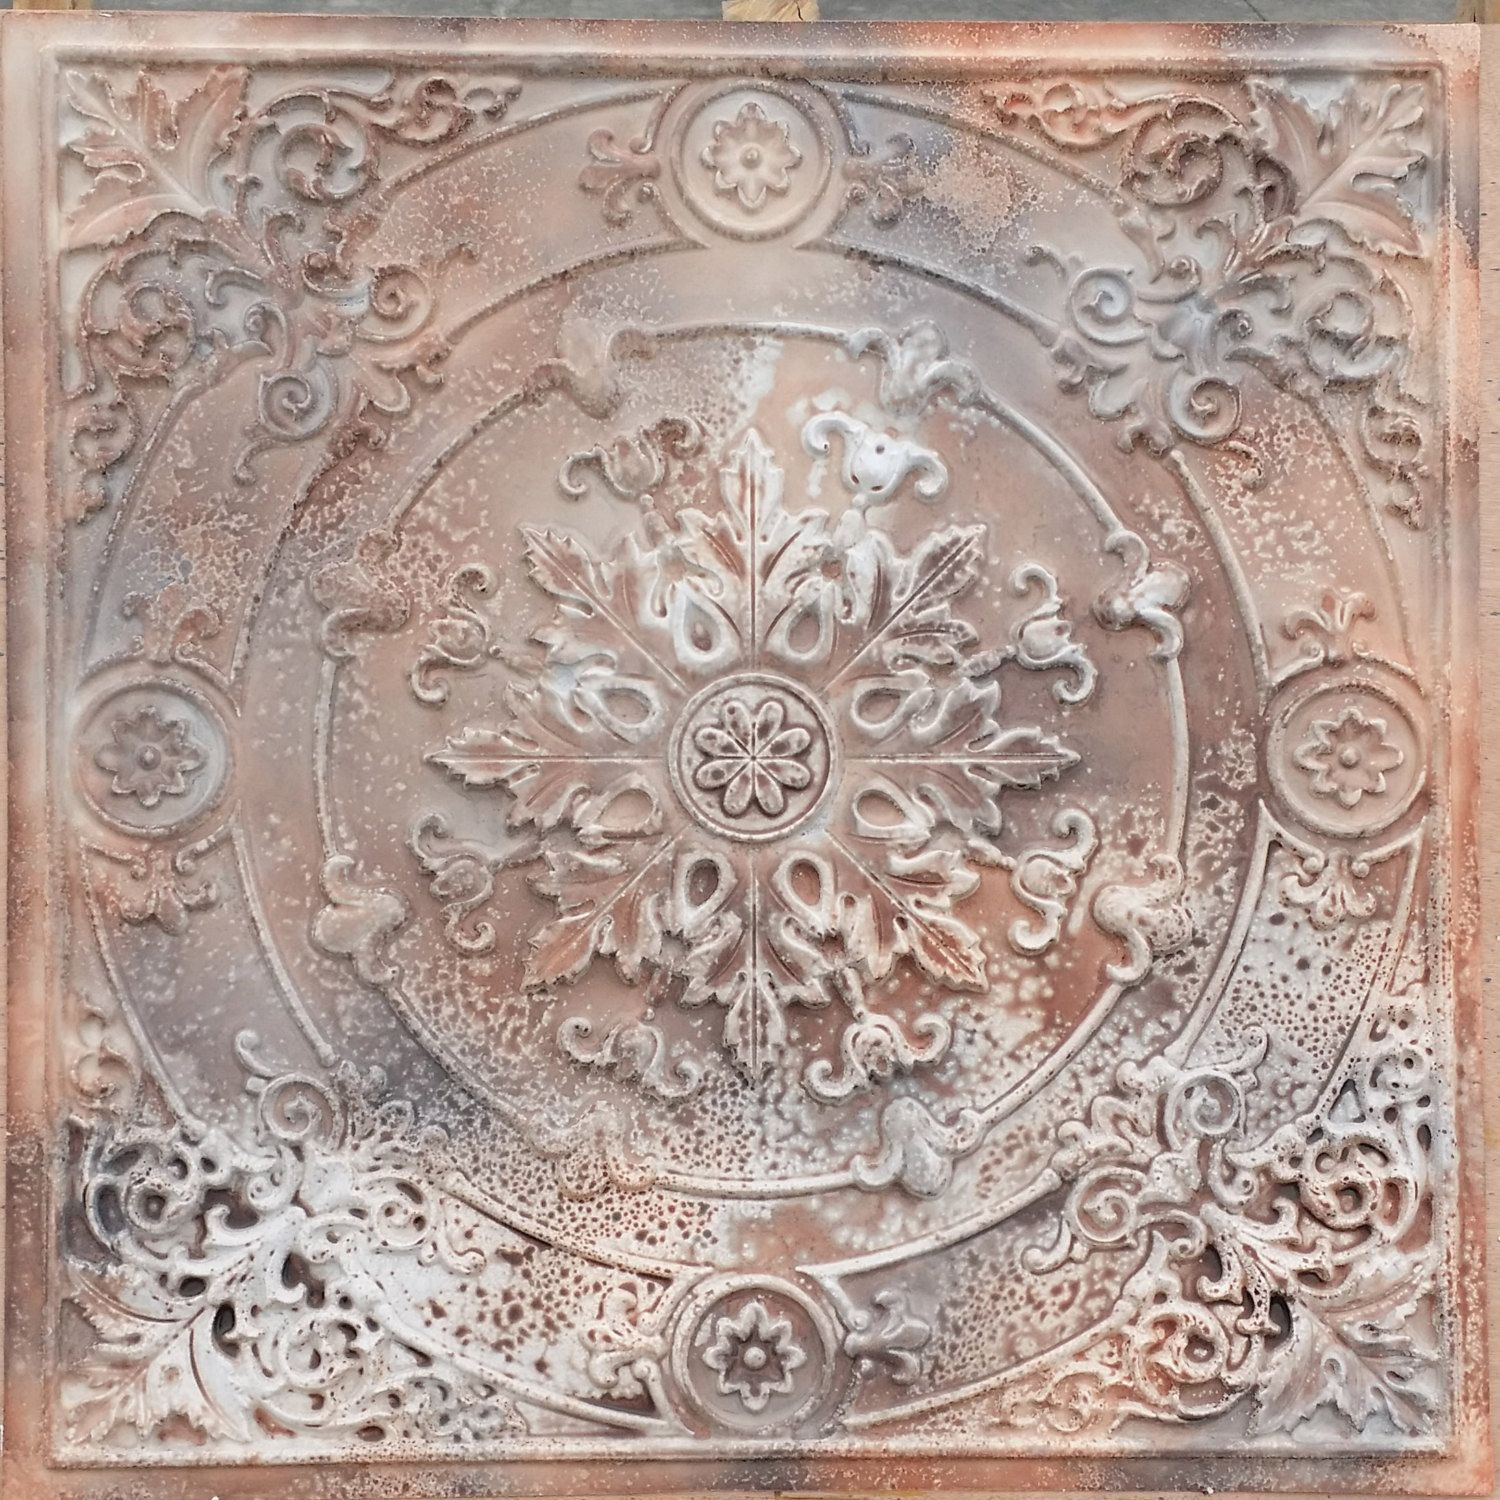 pl18 faux painted tin mixed media art 3d embossed ceiling tiles